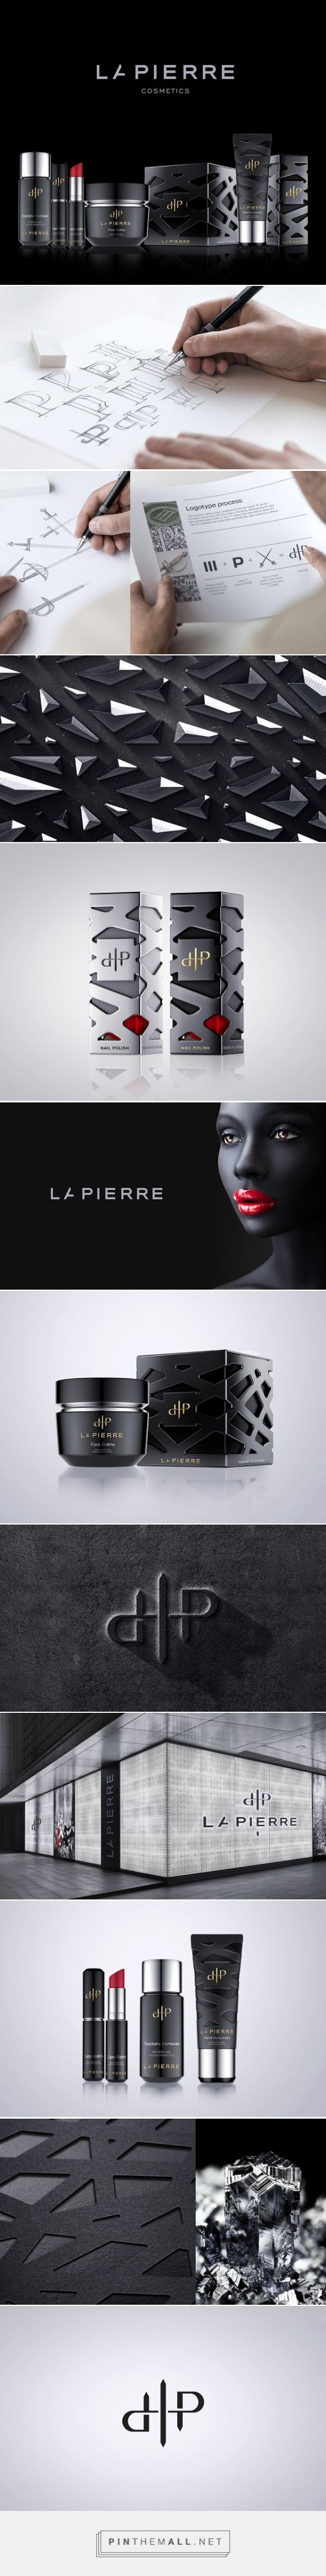 LaPierre cosmetics packaging designed by Reynolds and Reyner​ - http://www.packagingoftheworld.com/2015/09/lapierre.html